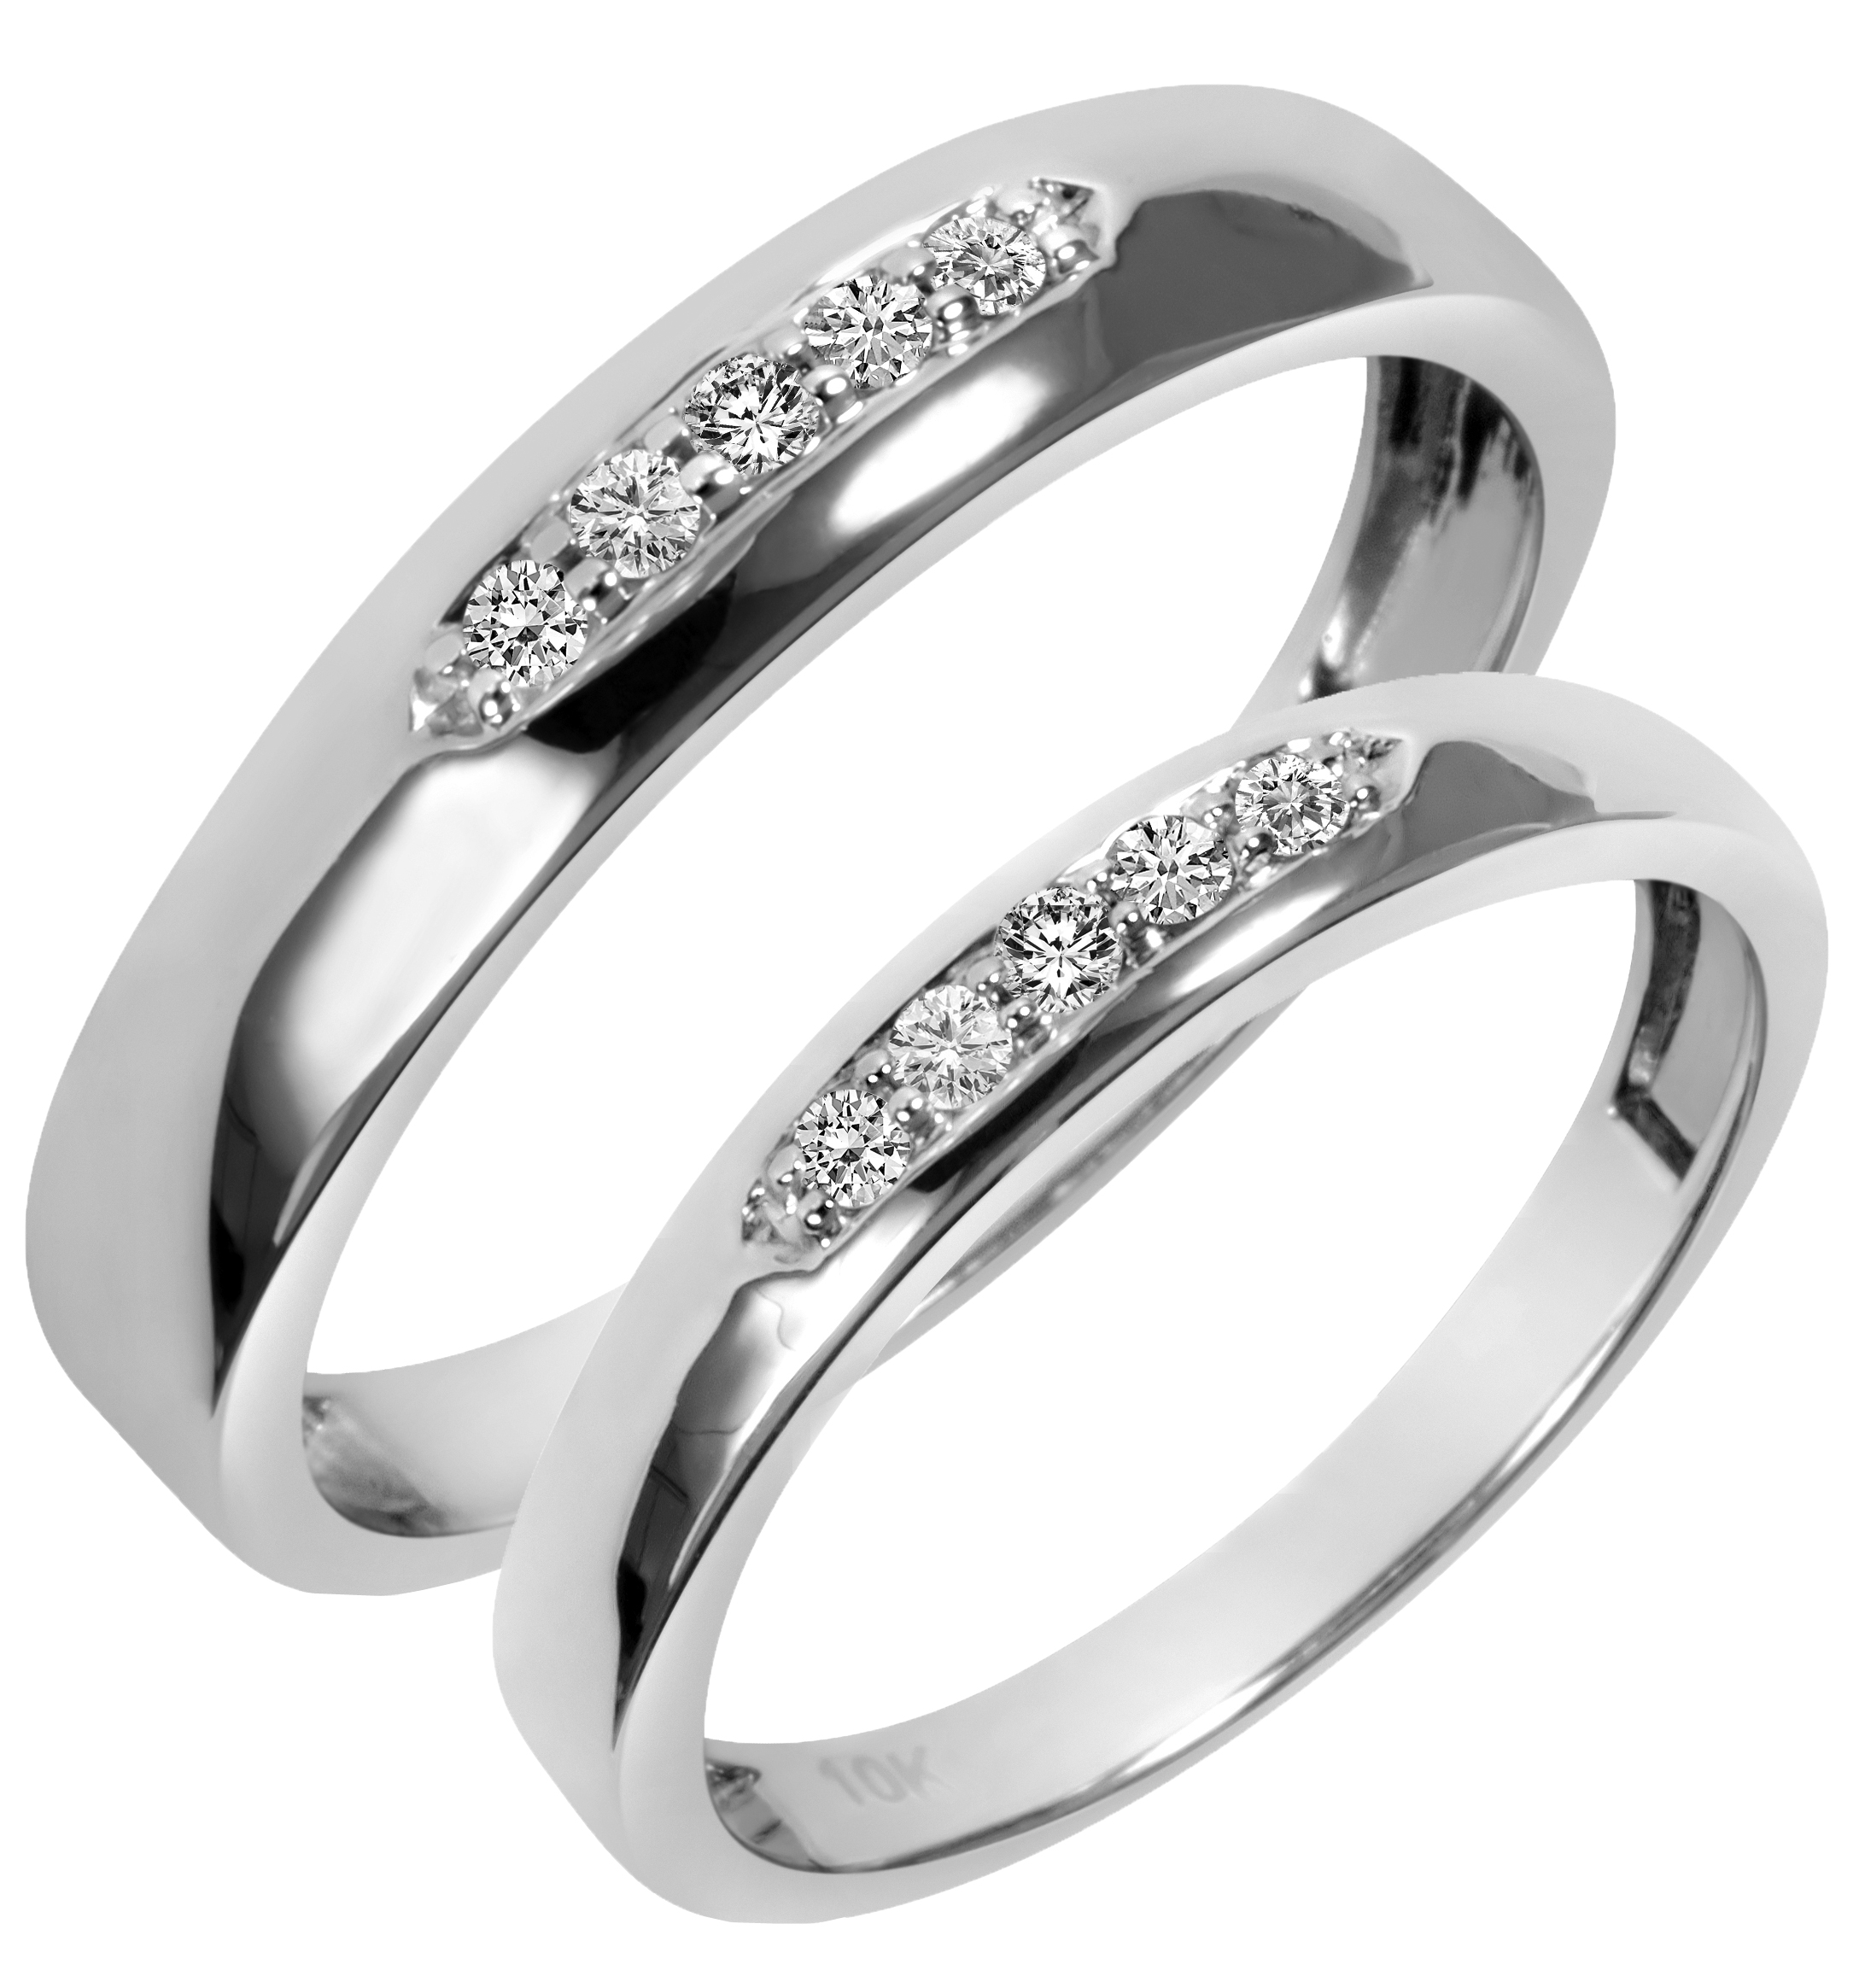 walmart wedding ring trios walmart wedding bands Walmart wedding ring trios